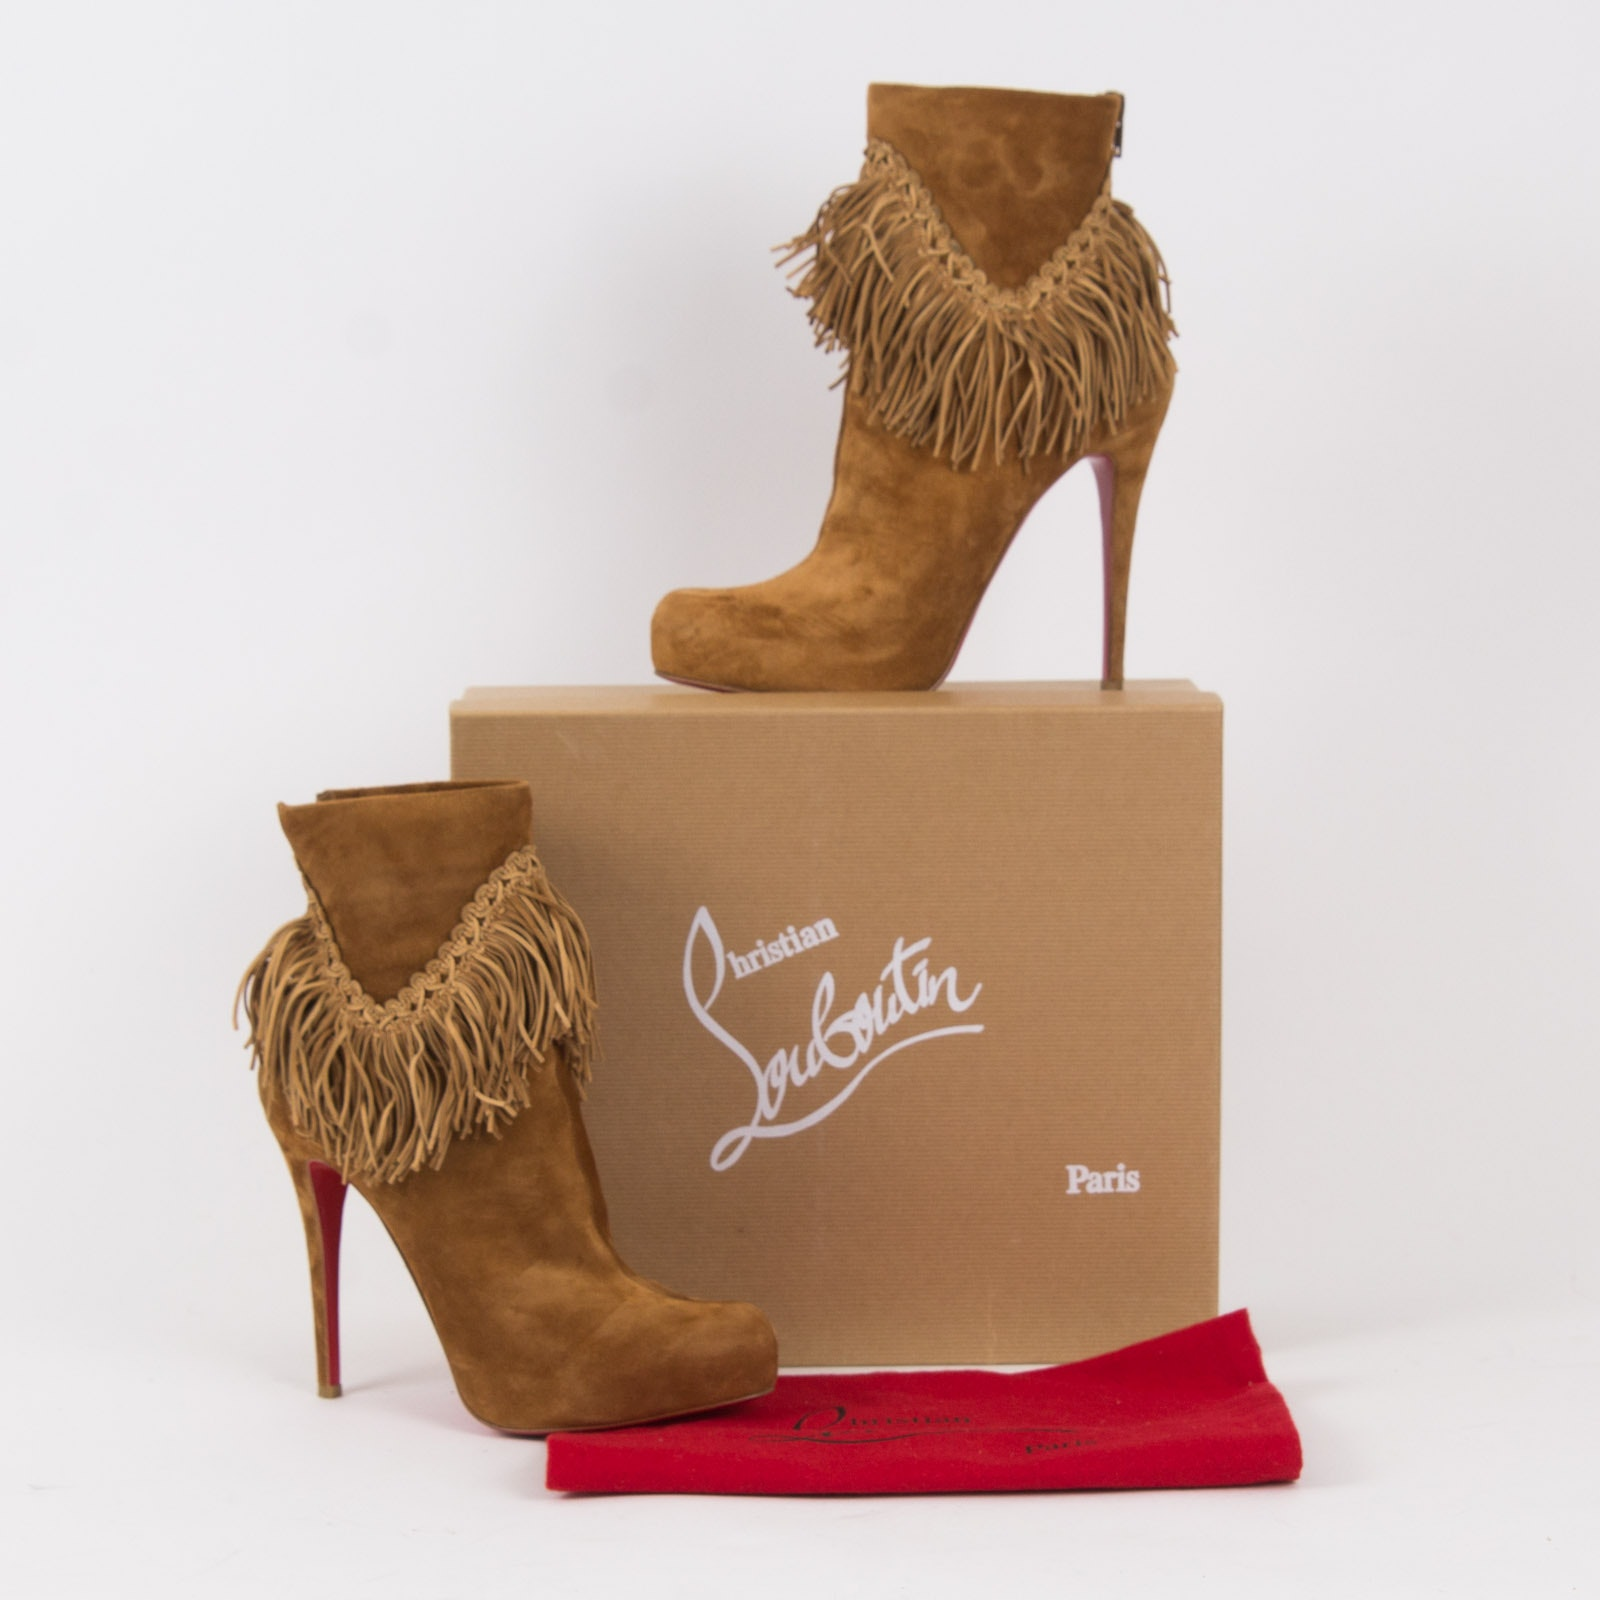 Christian Louboutin Suede Royal Ankle Boots